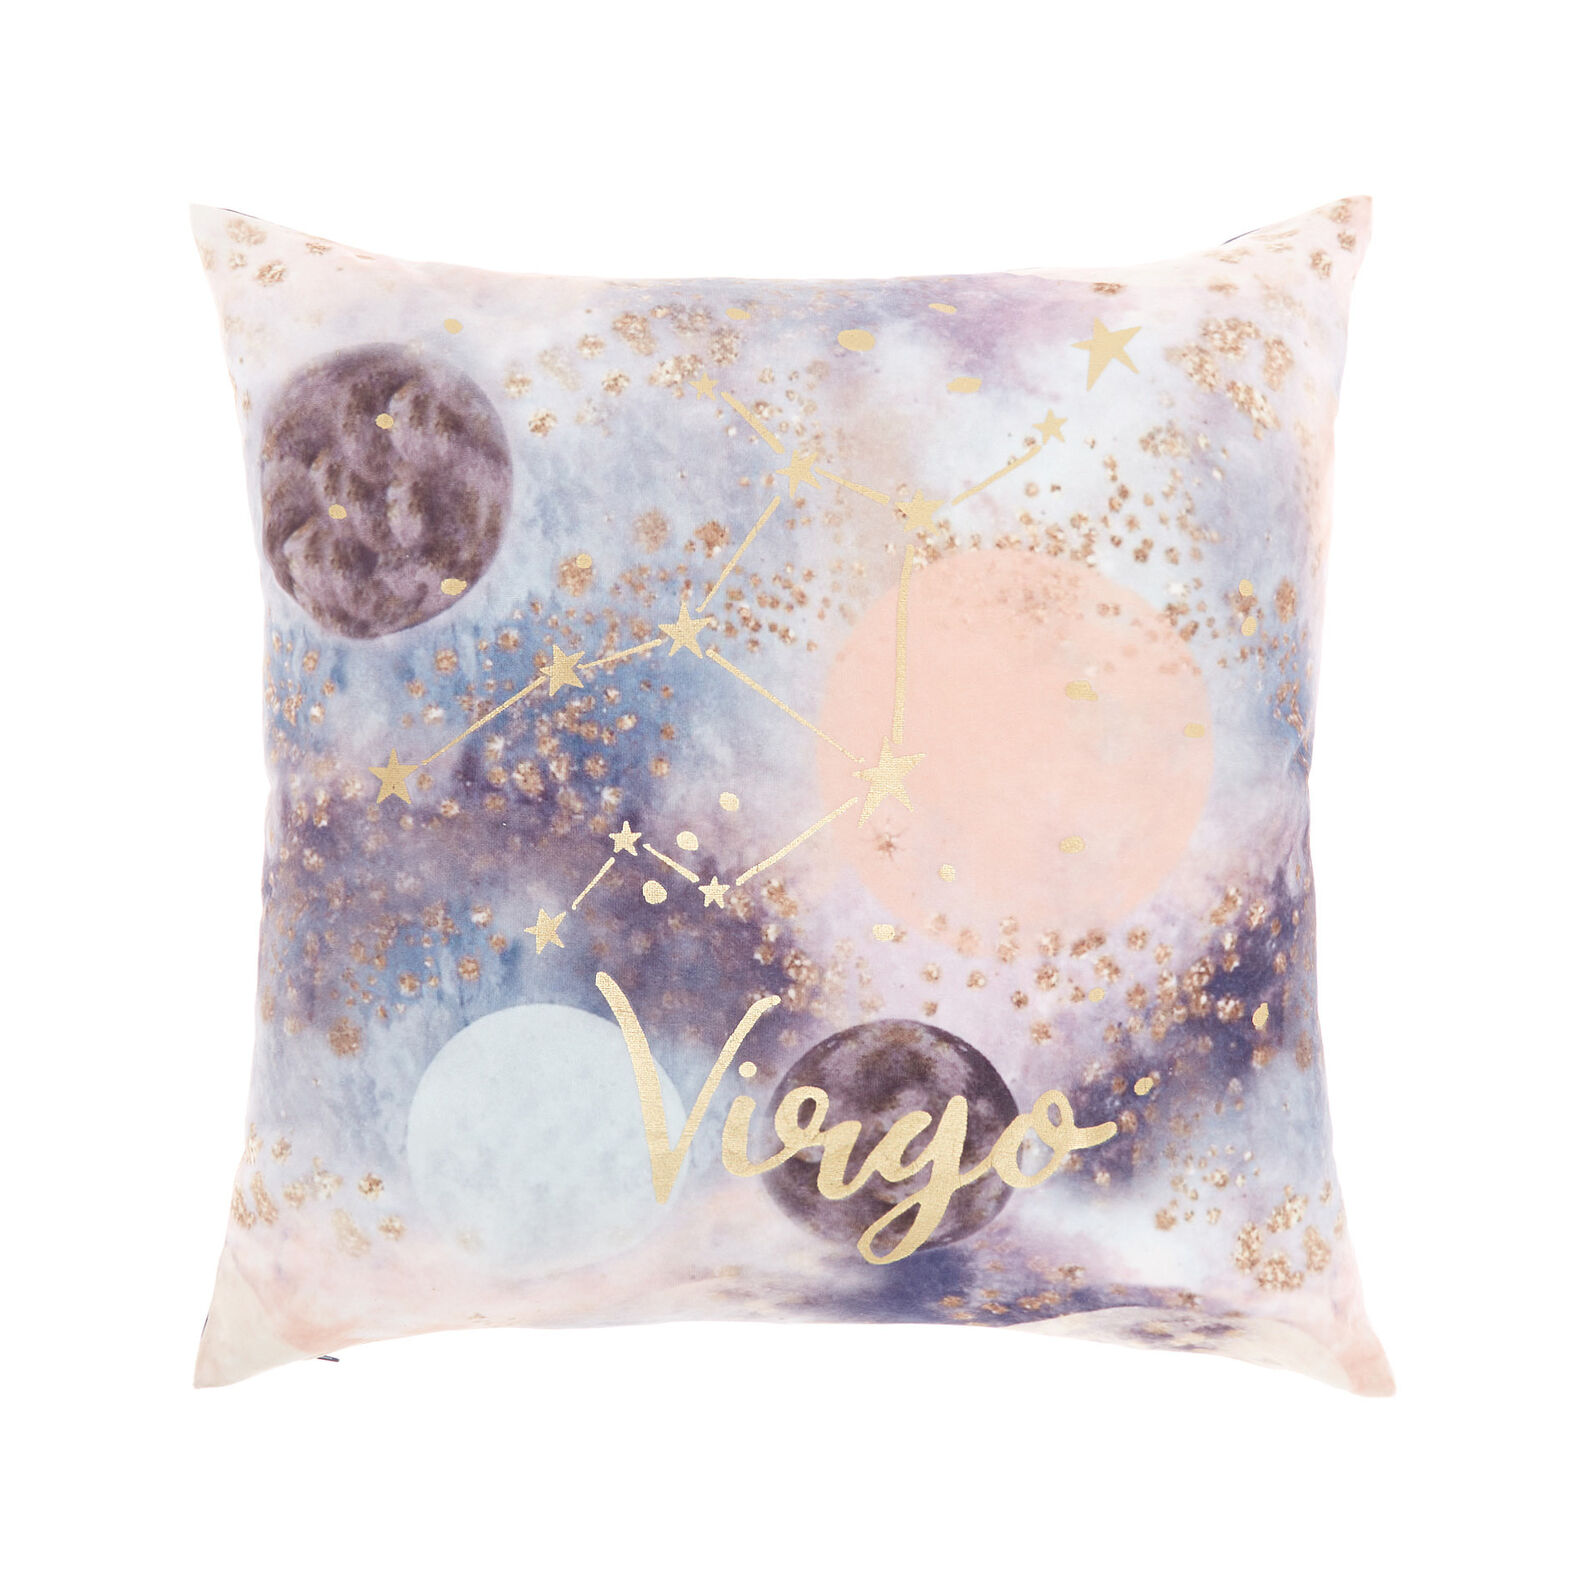 Cushion cover with Virgo print 45x45cm